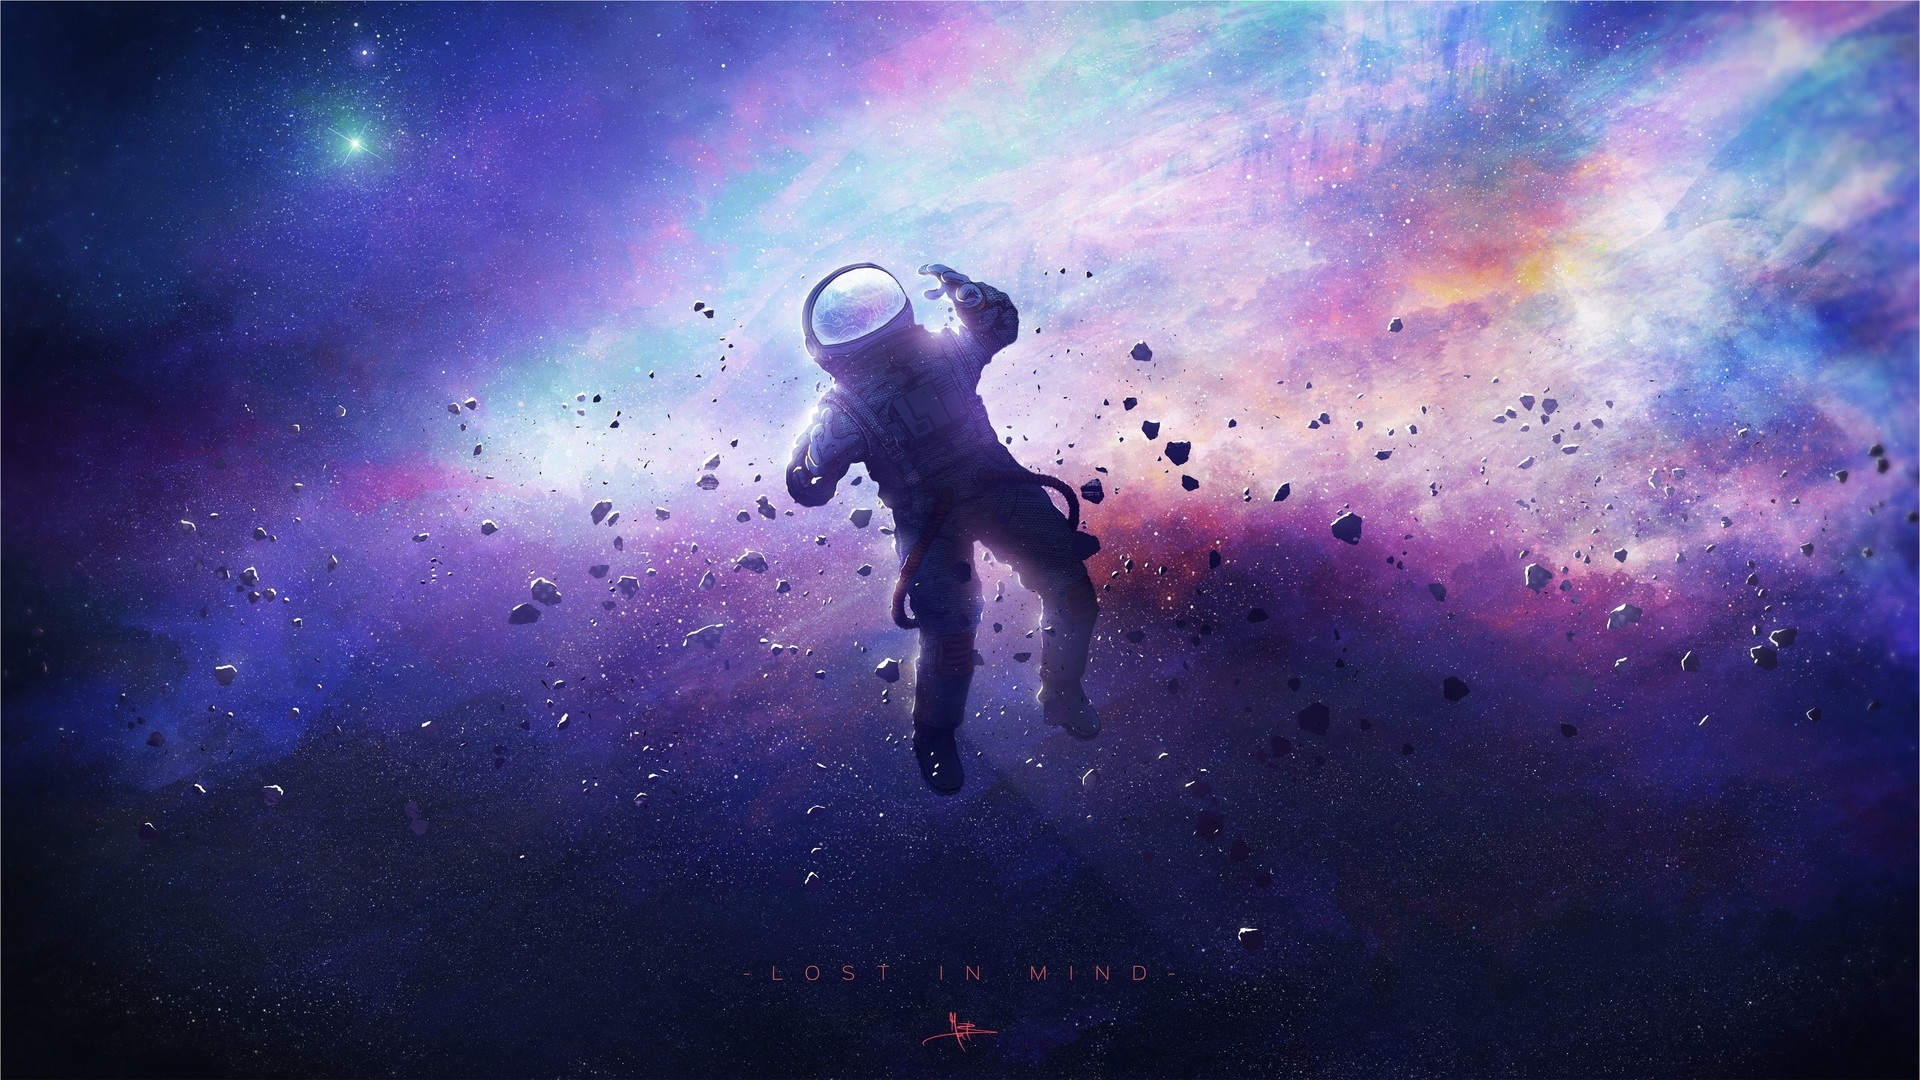 Astronaut Art Wallpaper theme